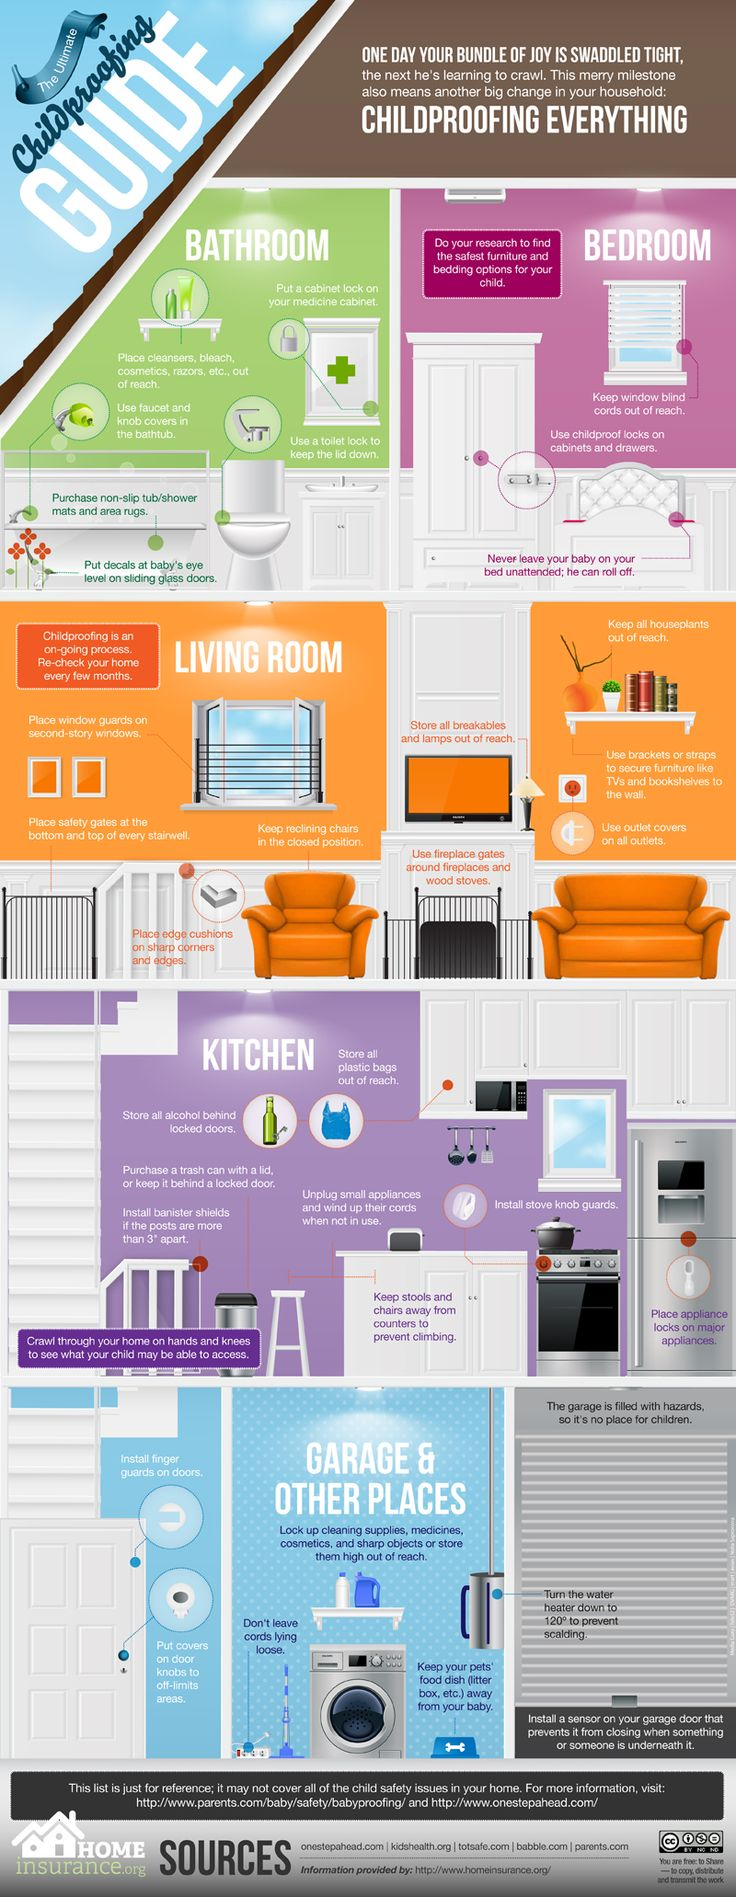 The ultimate childproofing guide: useful infographic with lots of tips on how to childproof your home.